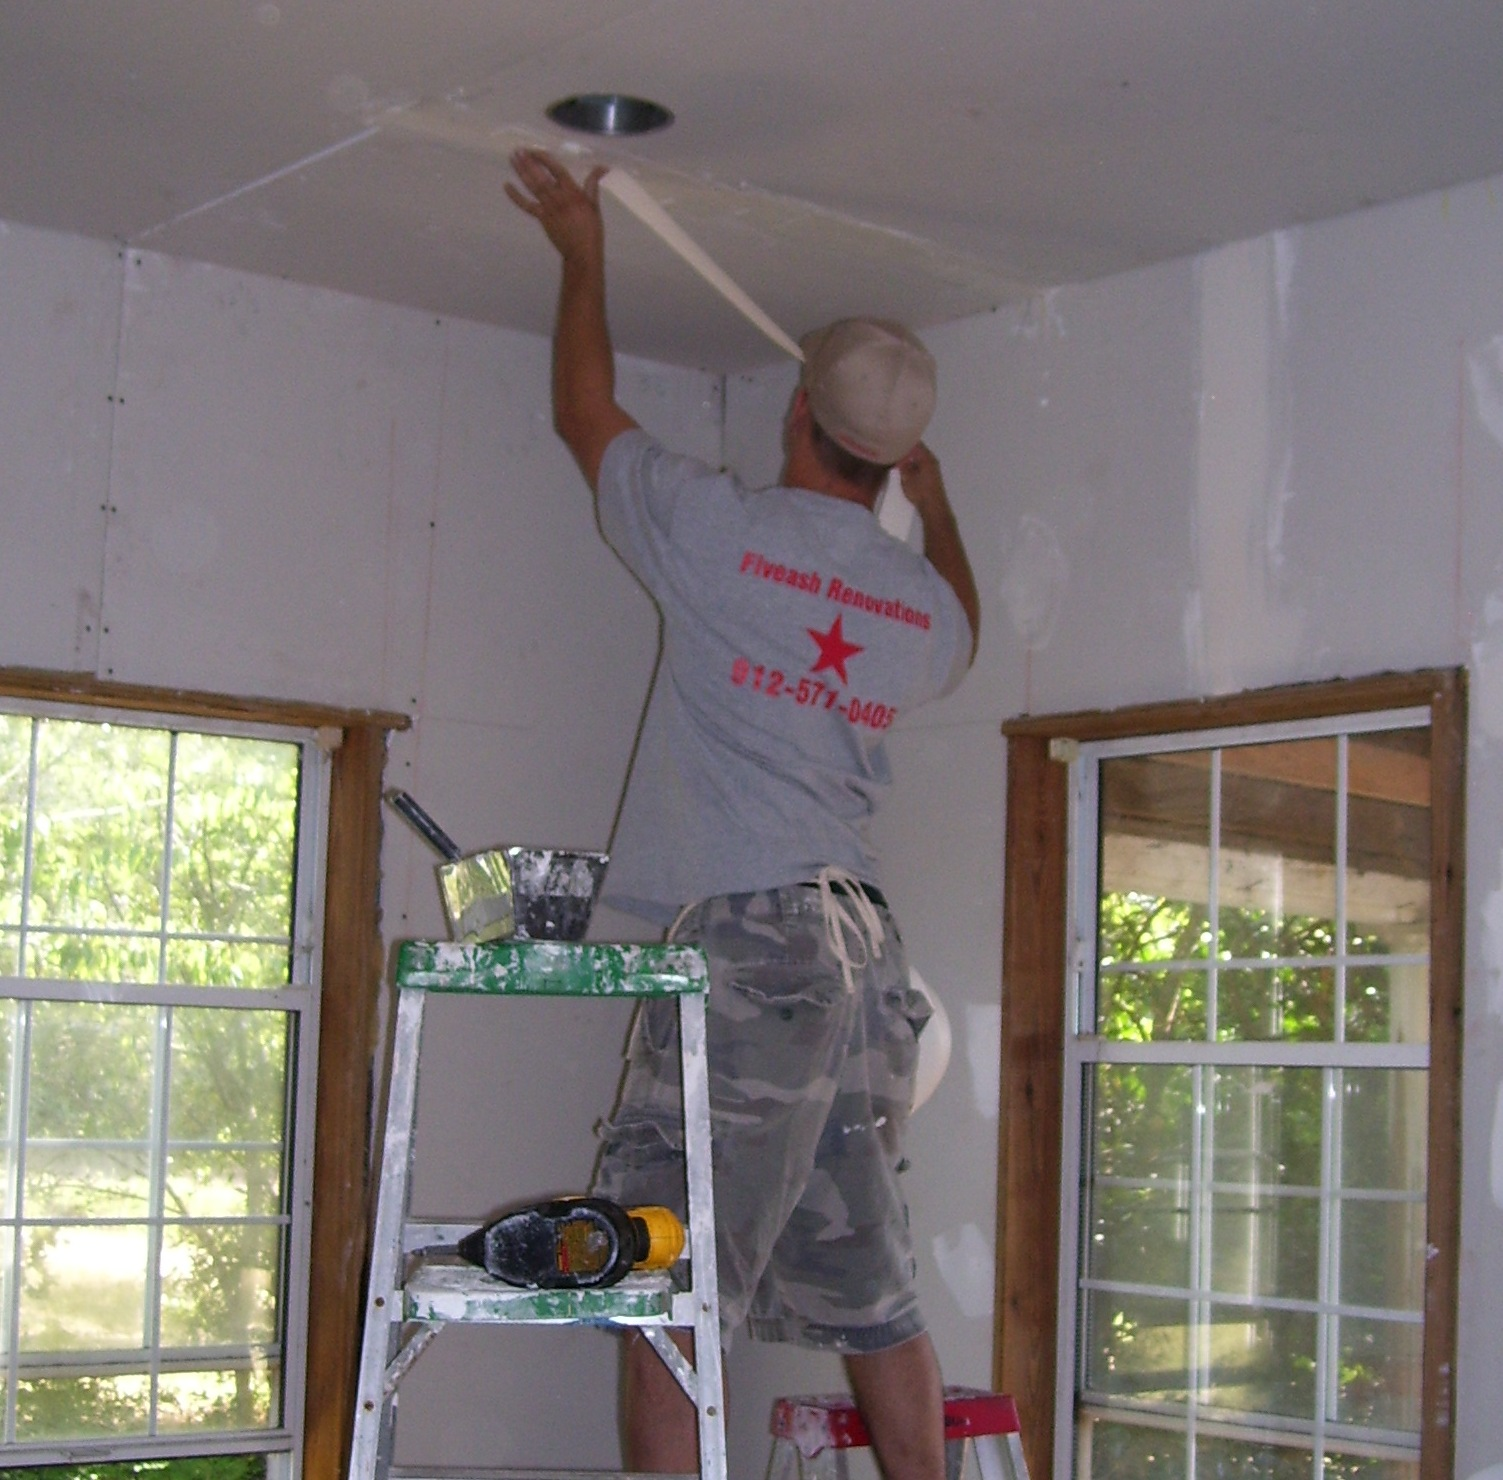 Owner/Operator Taping drywall in a Home Renovation/Remodel